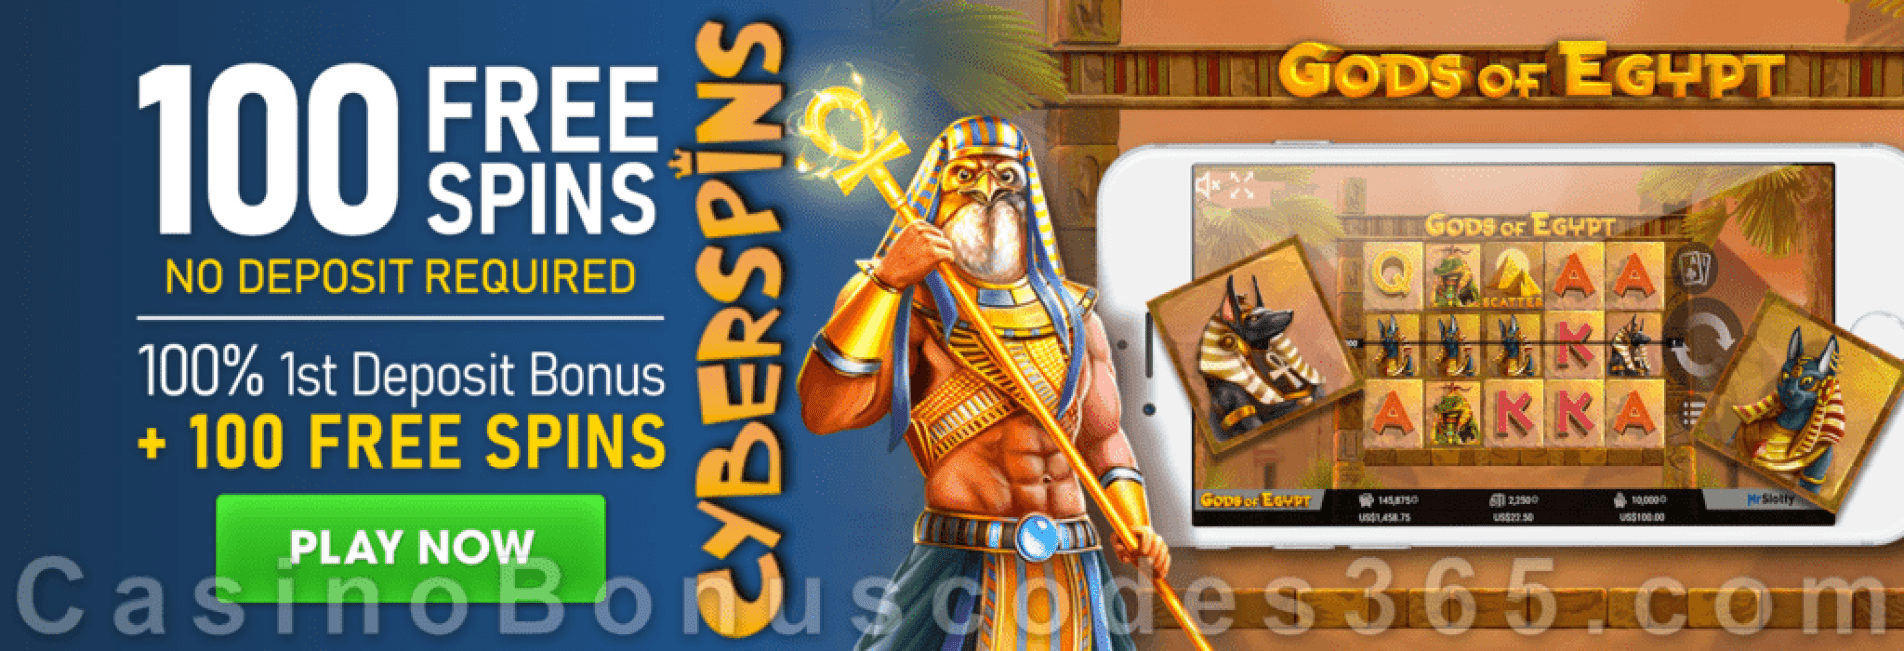 CyberSpins 100 FREE Mr. Slotty Gods Of Egypt Spins and 100% Match Bonus plus 100 FREE Spins Welcome Promo